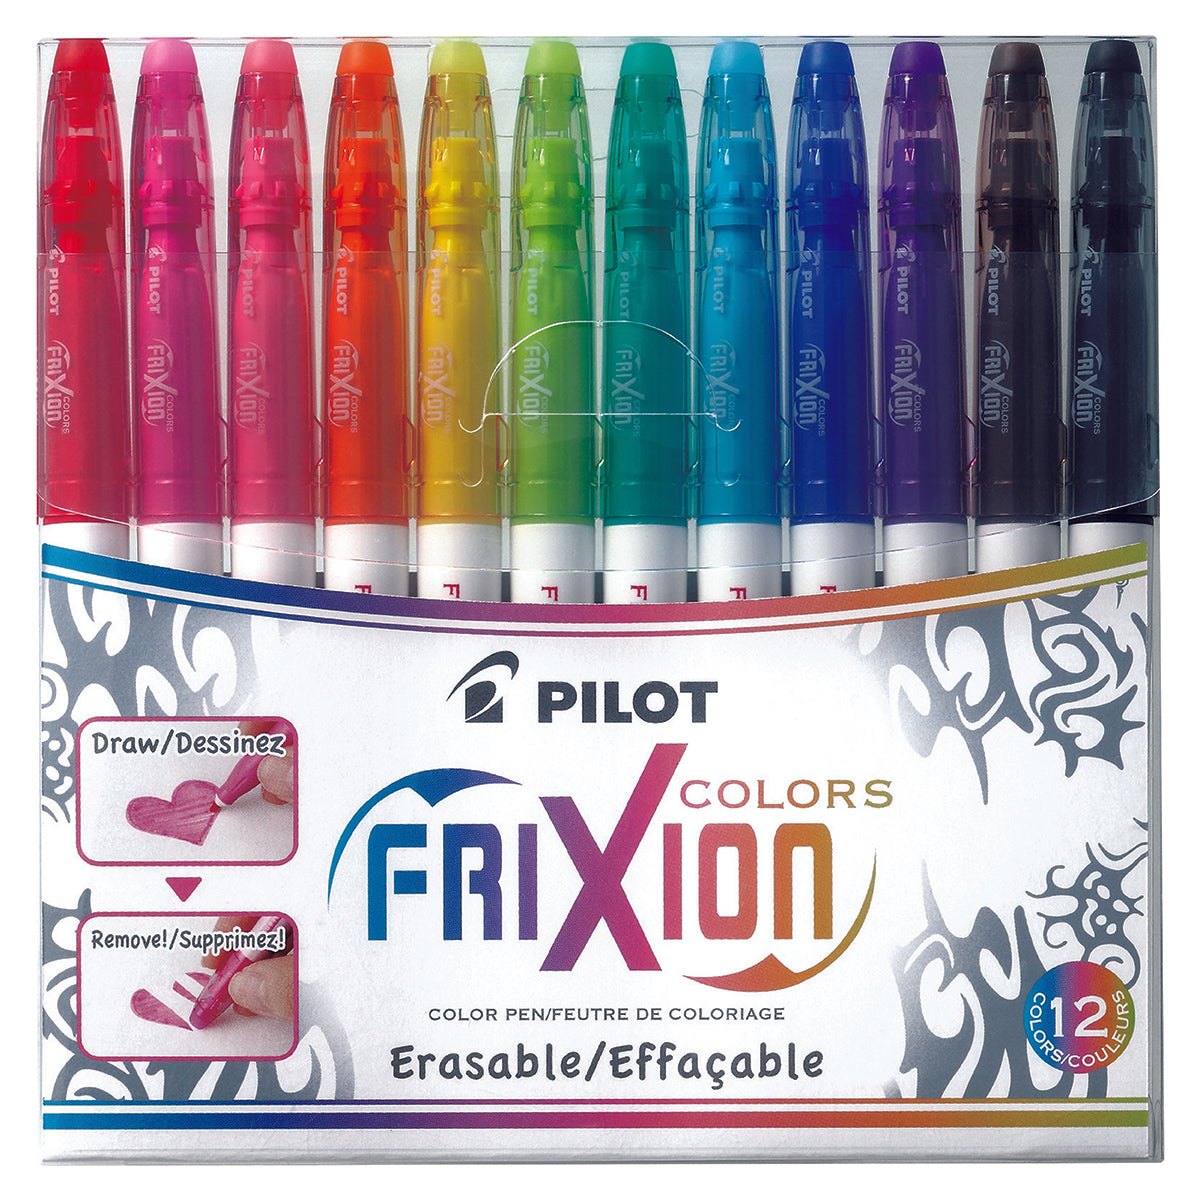 Pilot FriXion 12 Pack - Works with all Rocketbooks